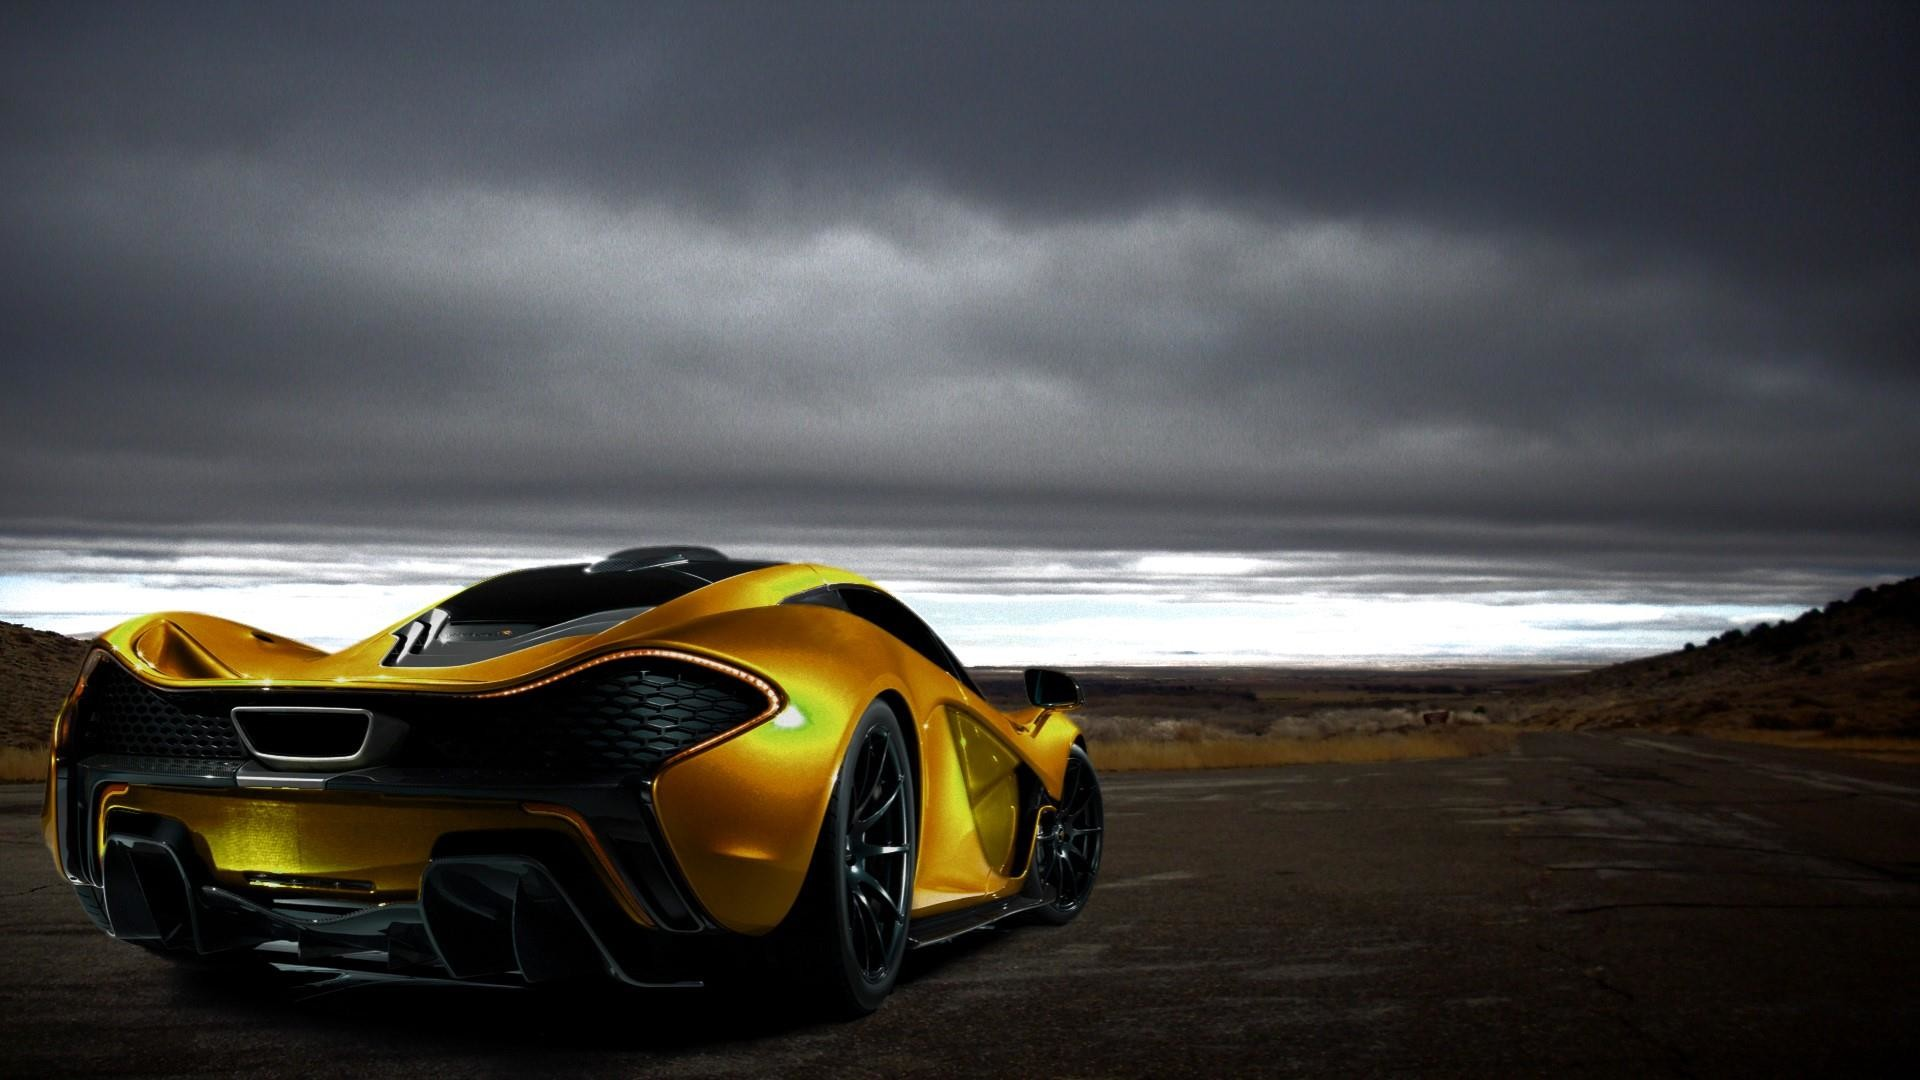 Res: 1920x1080, McLaren P1 Supercar Wallpaper | Wallpaper Studio 10 | Tens of thousands HD  and UltraHD wallpapers for Android, Windows and Xbox